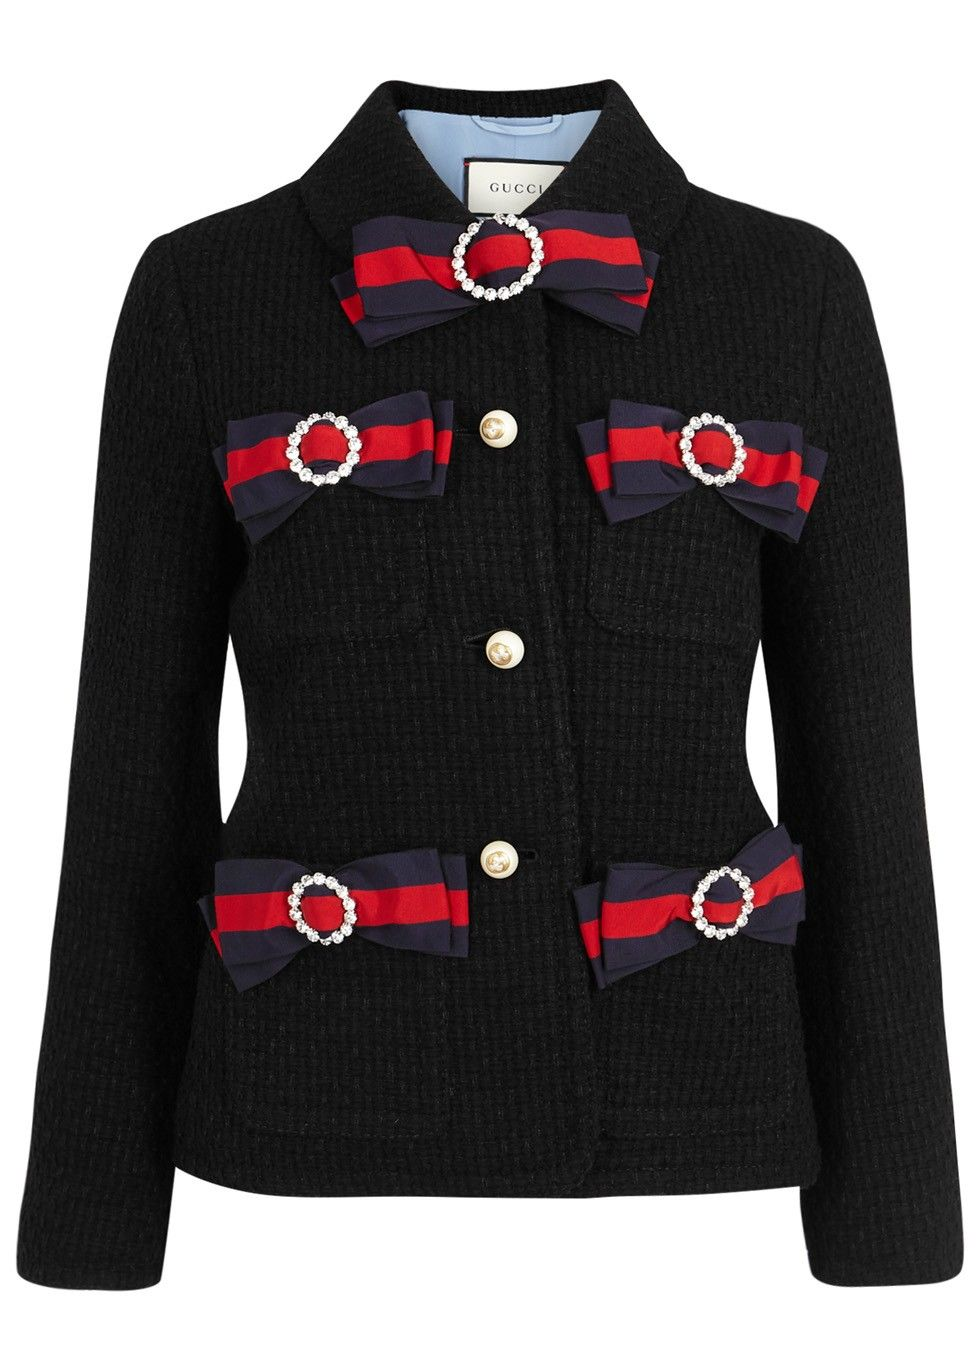 125df697a Gucci black tweed jacket Cropped, crystal-embellished and signature striped  grosgrain bows. www.italianist.com